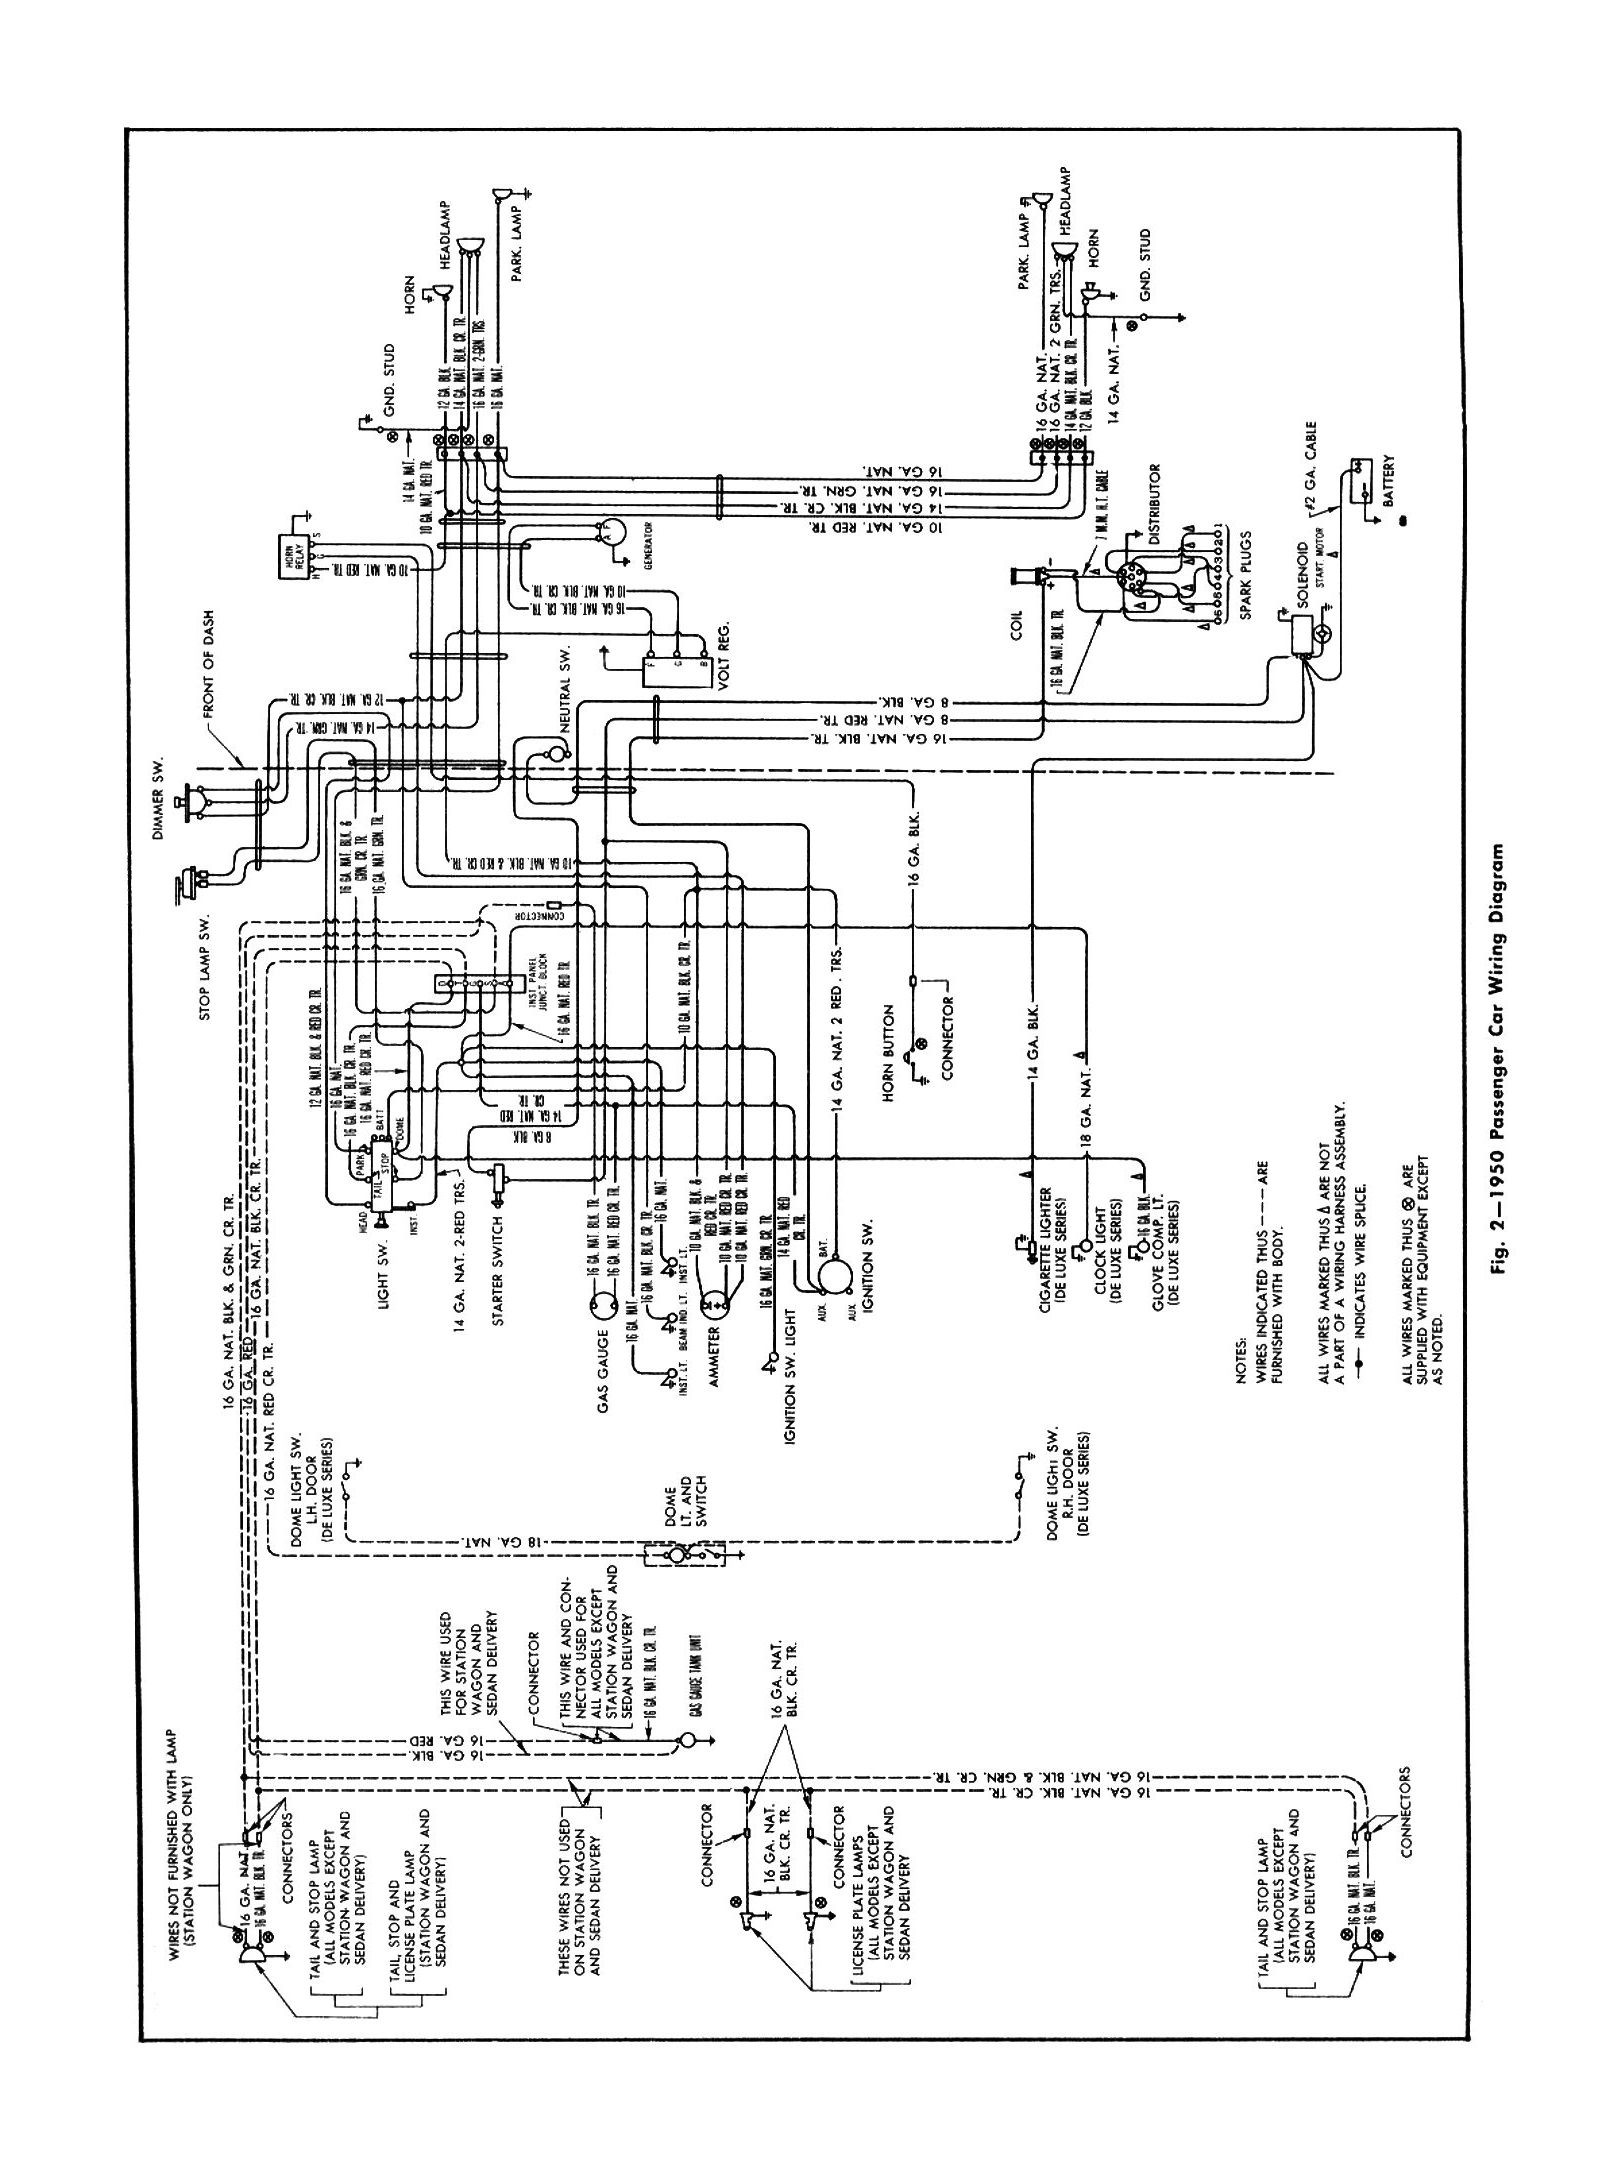 1951 chevrolet wiring diagram schema wiring diagram 55 Chevy Wiring Diagram 51 chevy wiring diagram data wiring diagram blog 1951 chevy 3100 wiring diagram 1951 chevrolet wiring diagram source chevy light switch